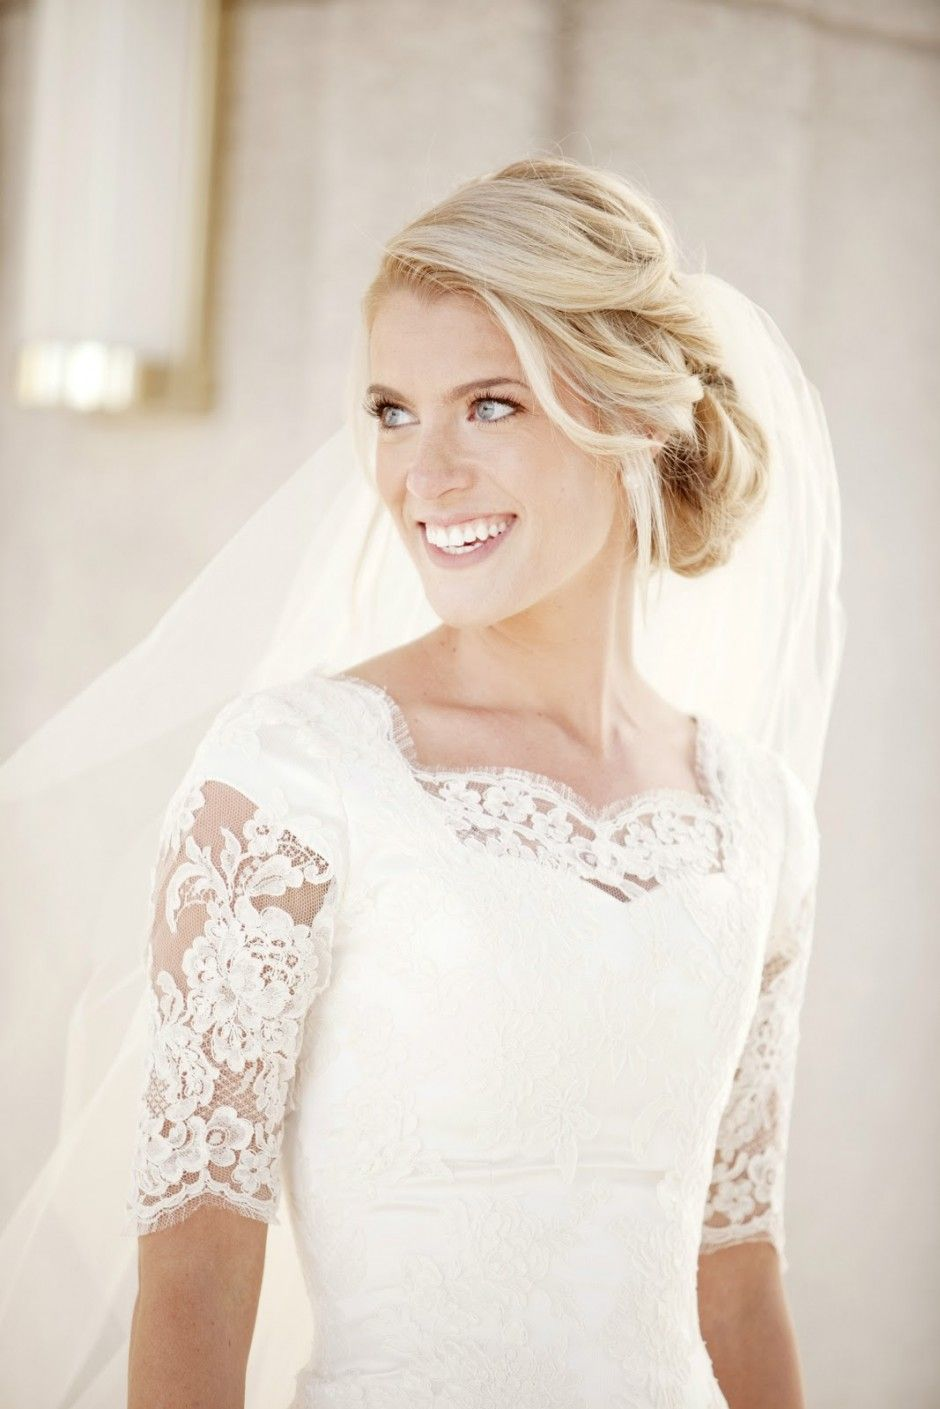 Wedding dress sleeves to be inspired by lace wedding dresses